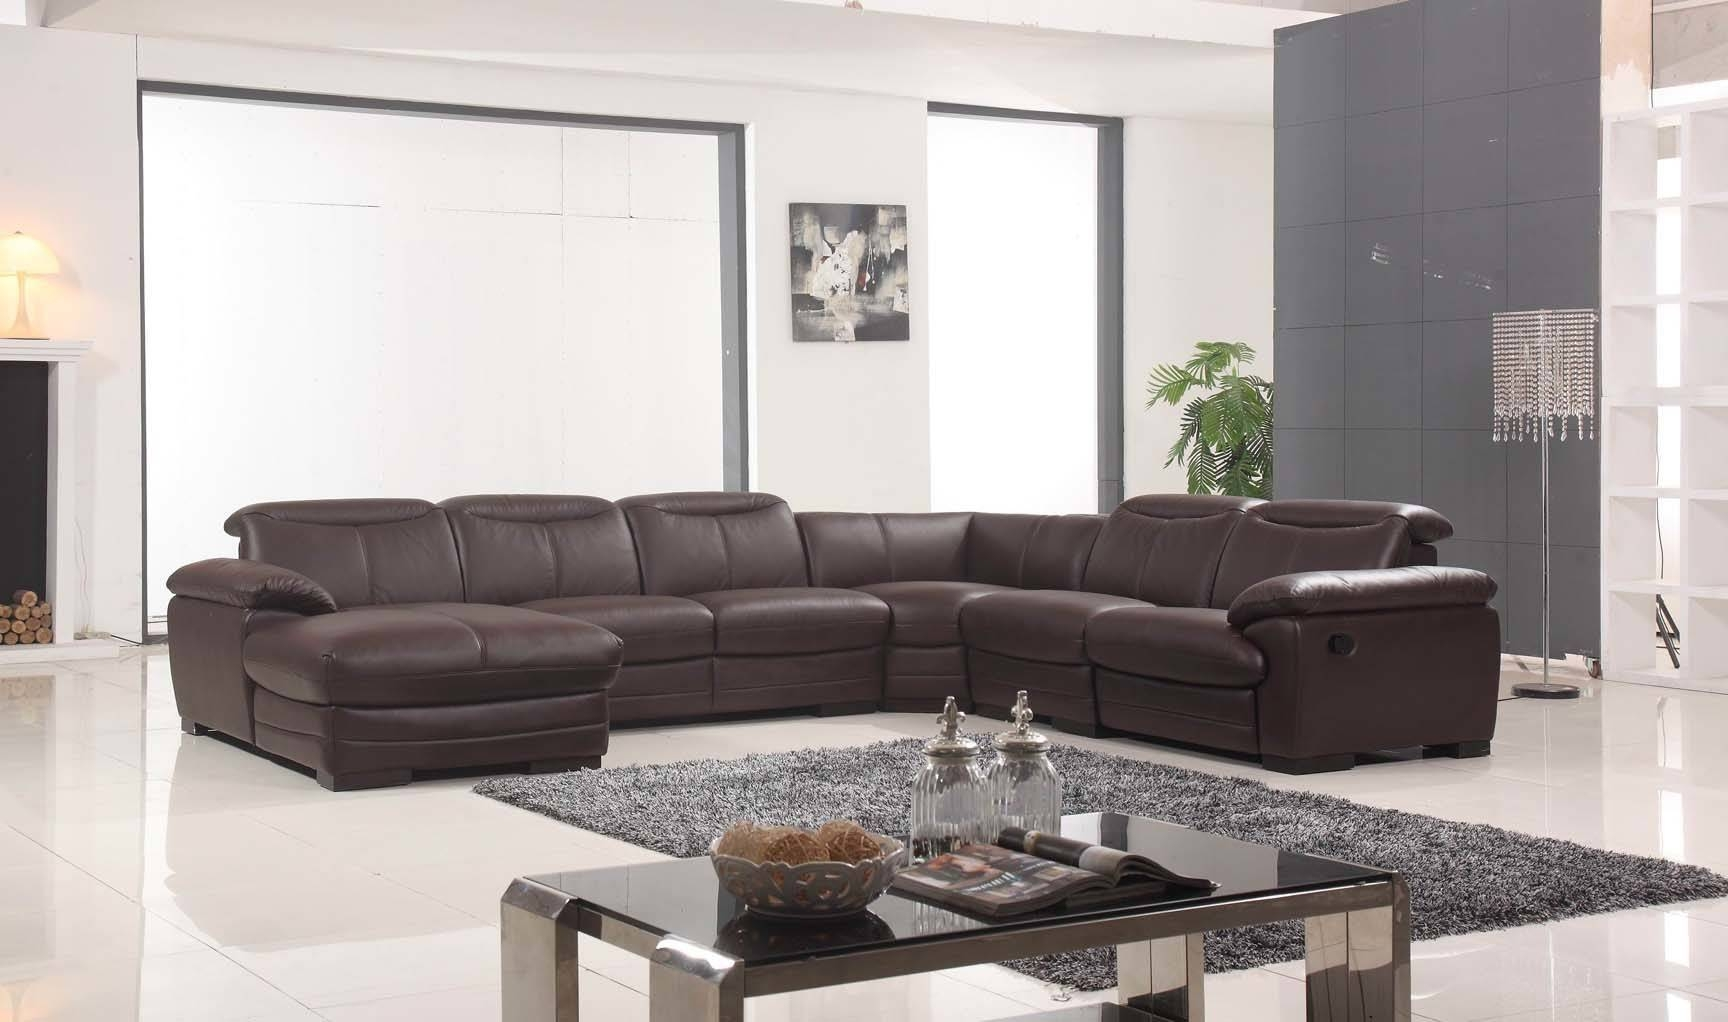 Huge Sectional Sofa. Best 25 Industrial Sectional Sofas Ideas On inside Extra Large Leather Sectional Sofas (Image 14 of 15)